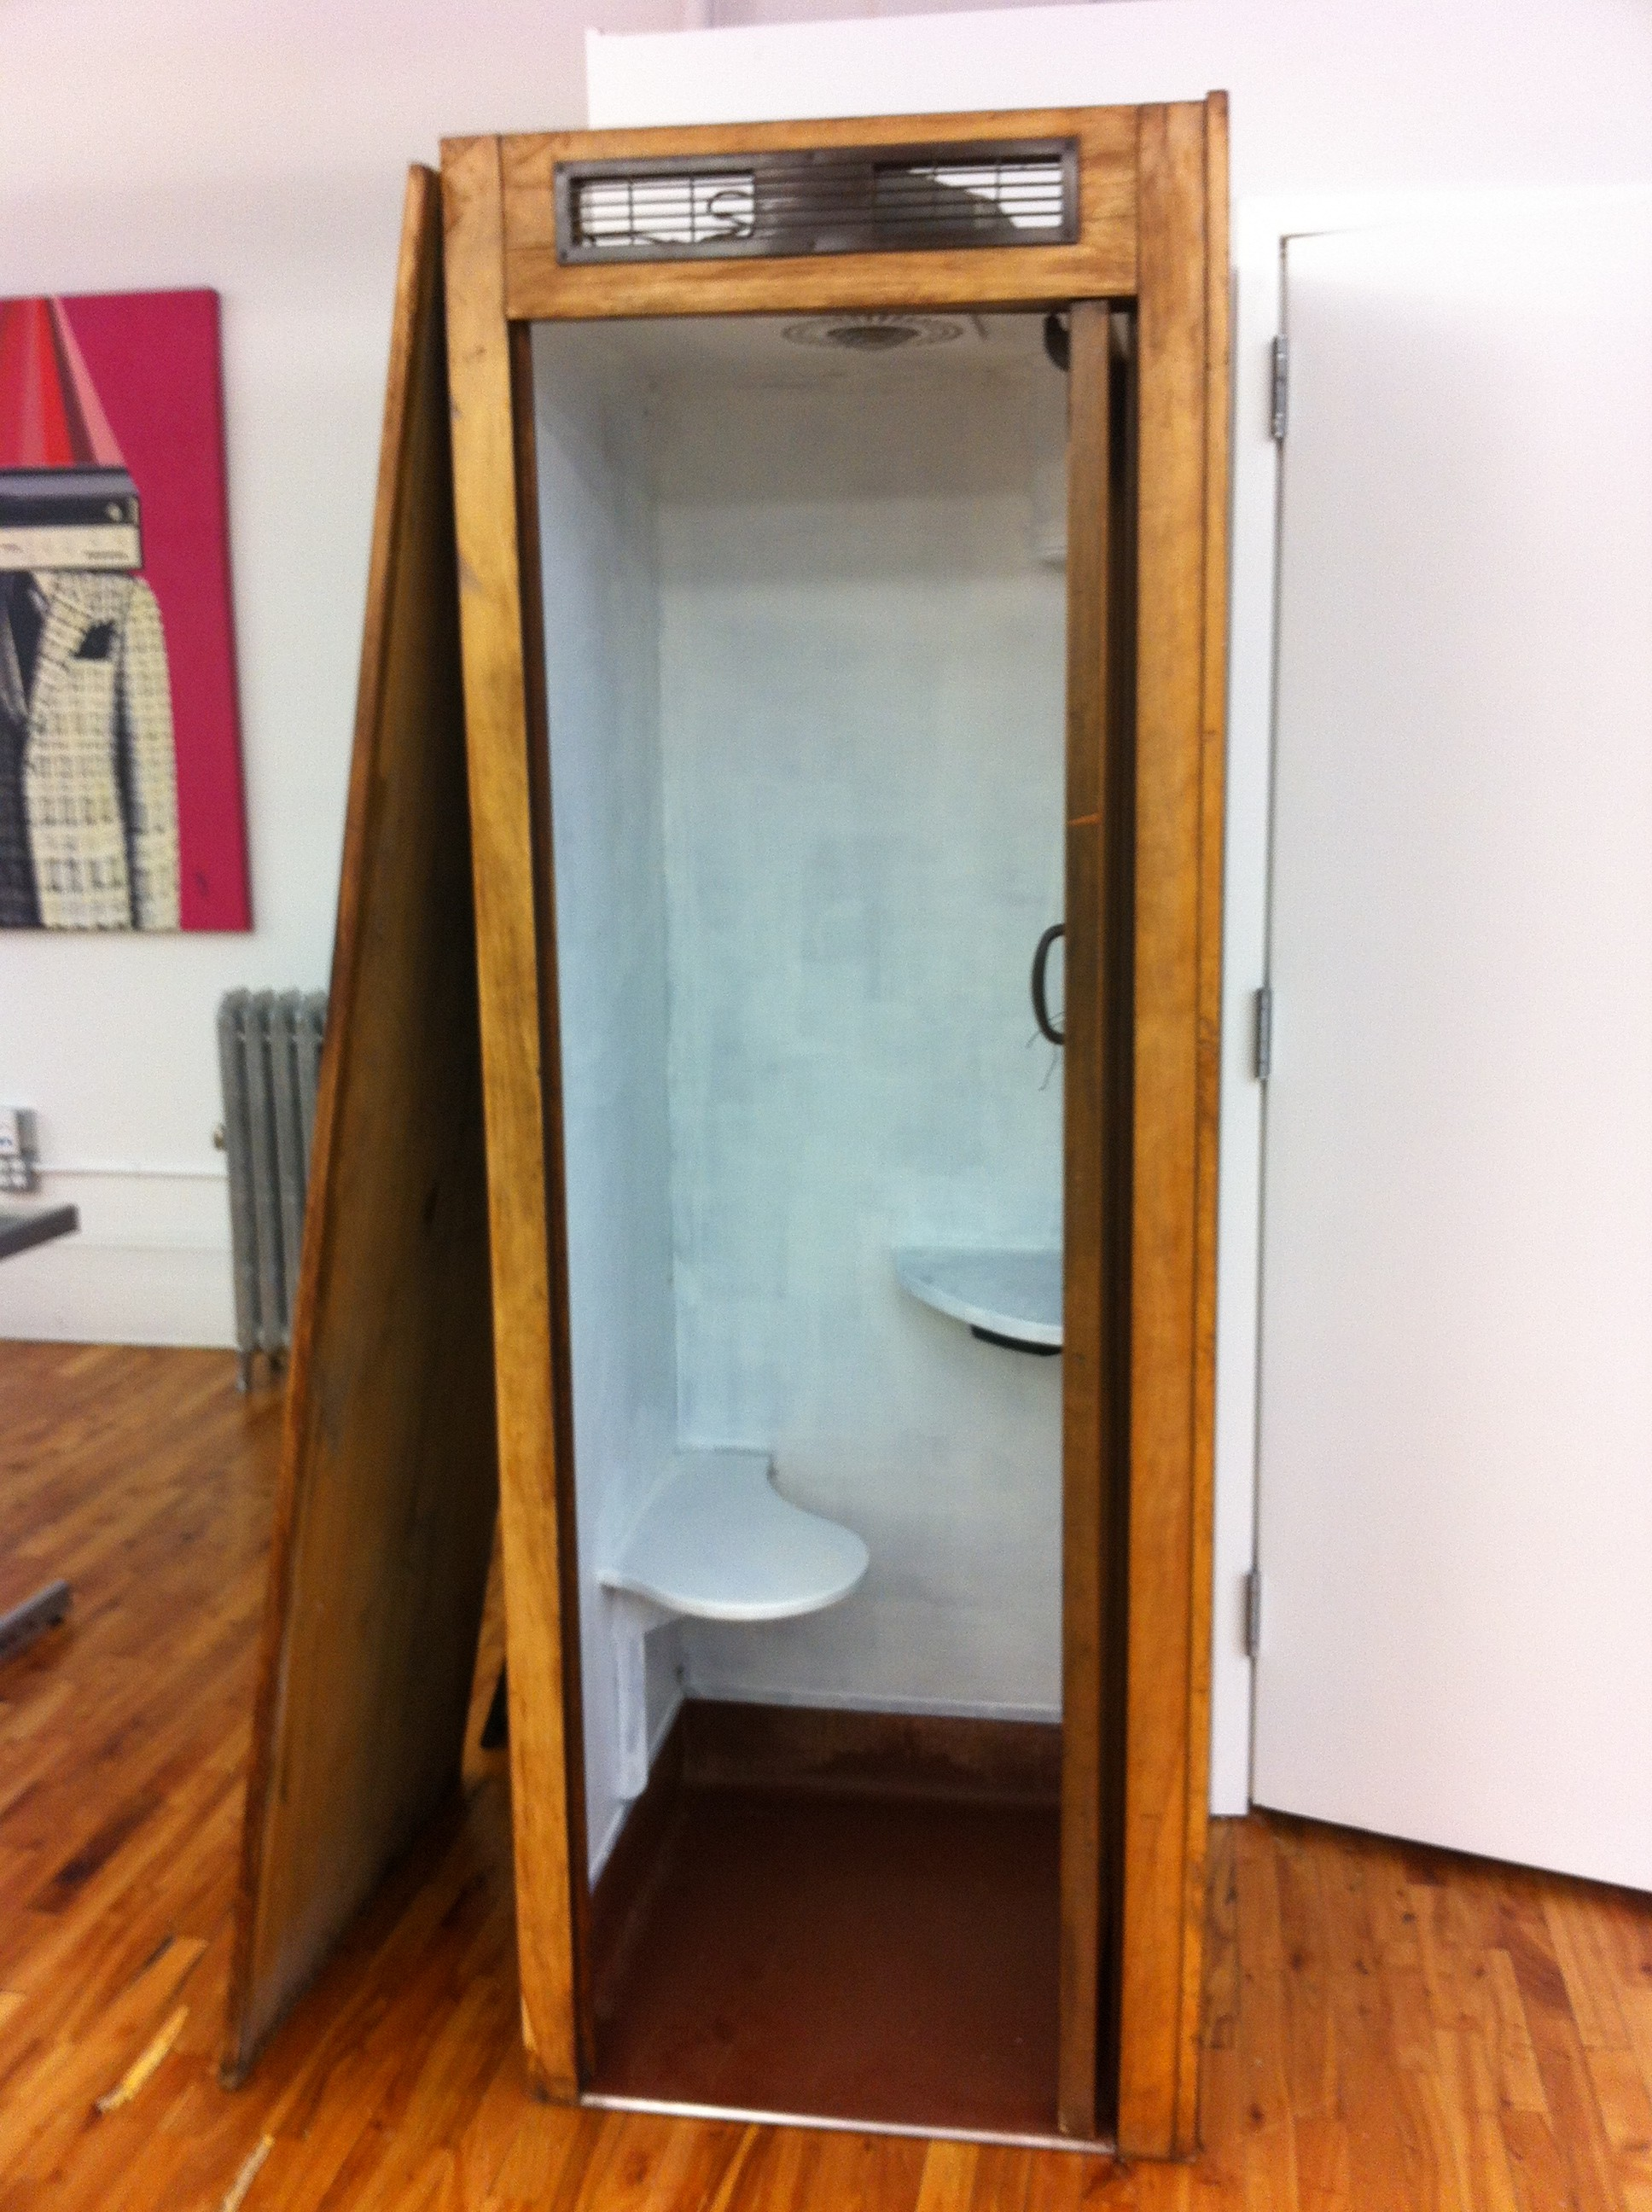 A pic of the primed interior of one of the phone booths